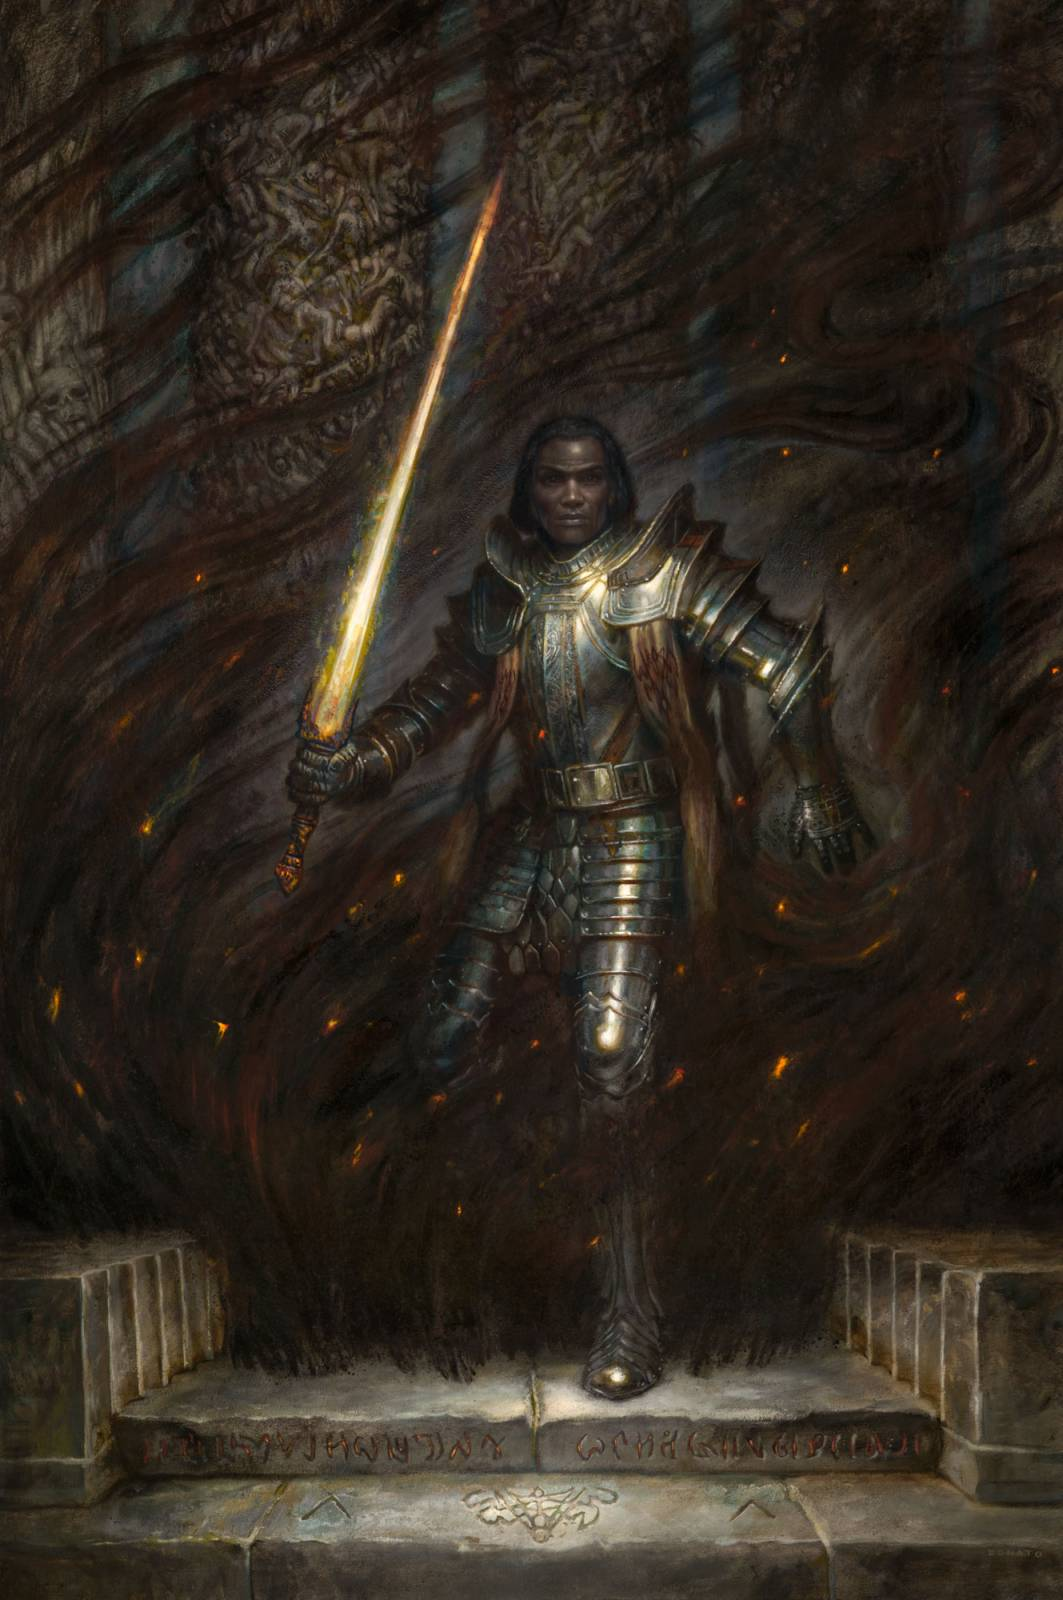 The Herald Taln – The Stormlight Archives